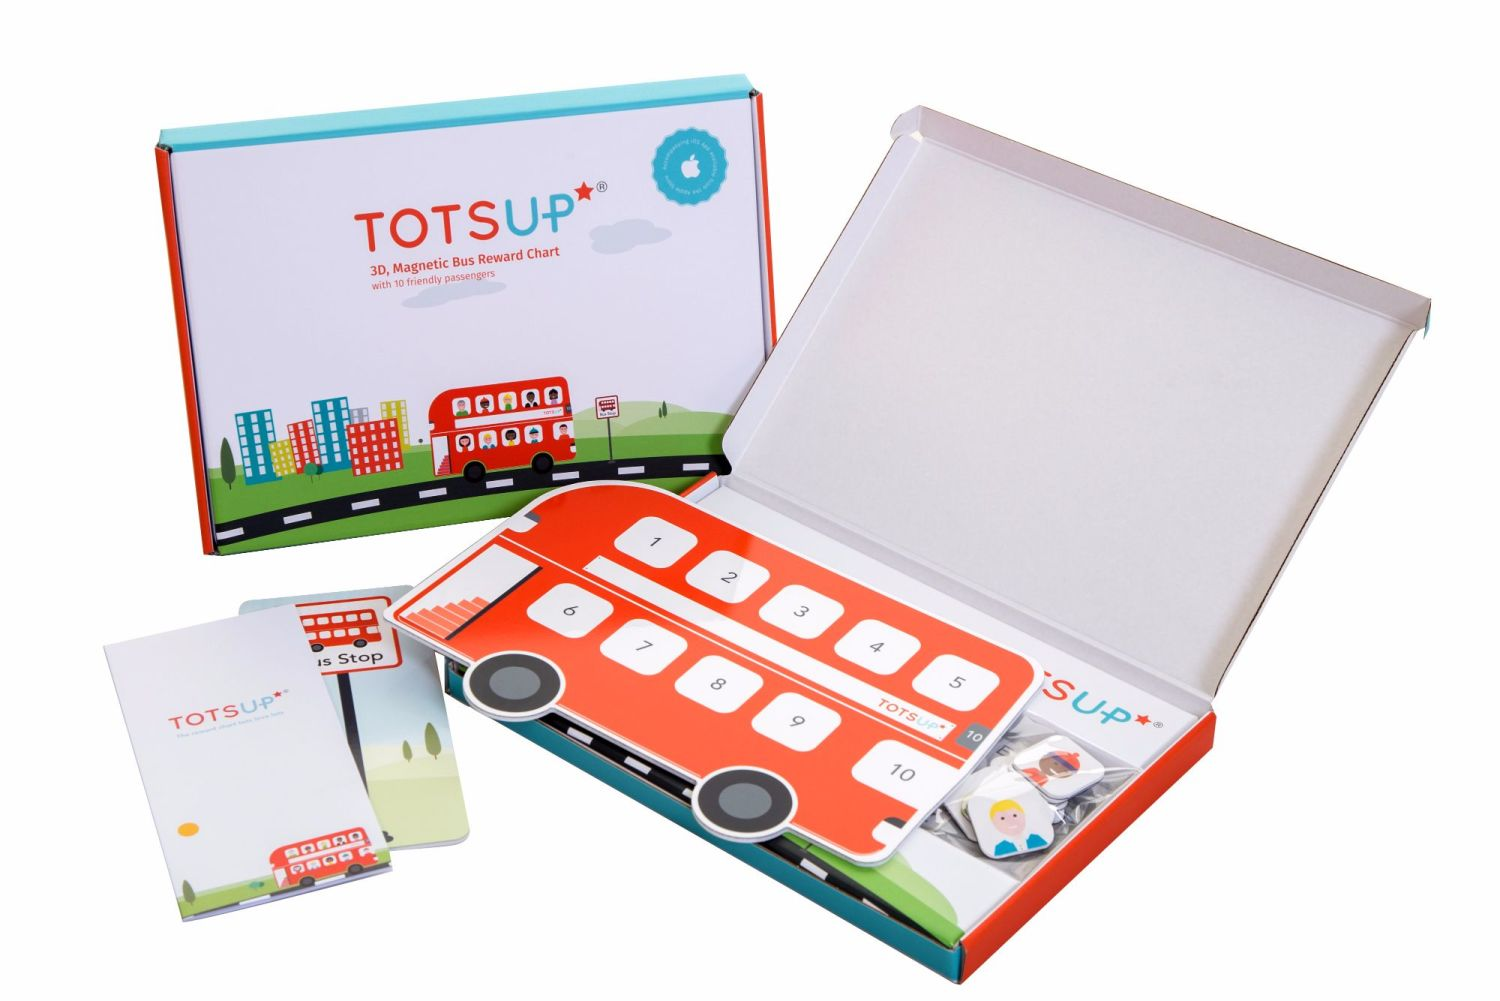 TotsUP blog giveaway reward bus chart award winning good behaviour system (